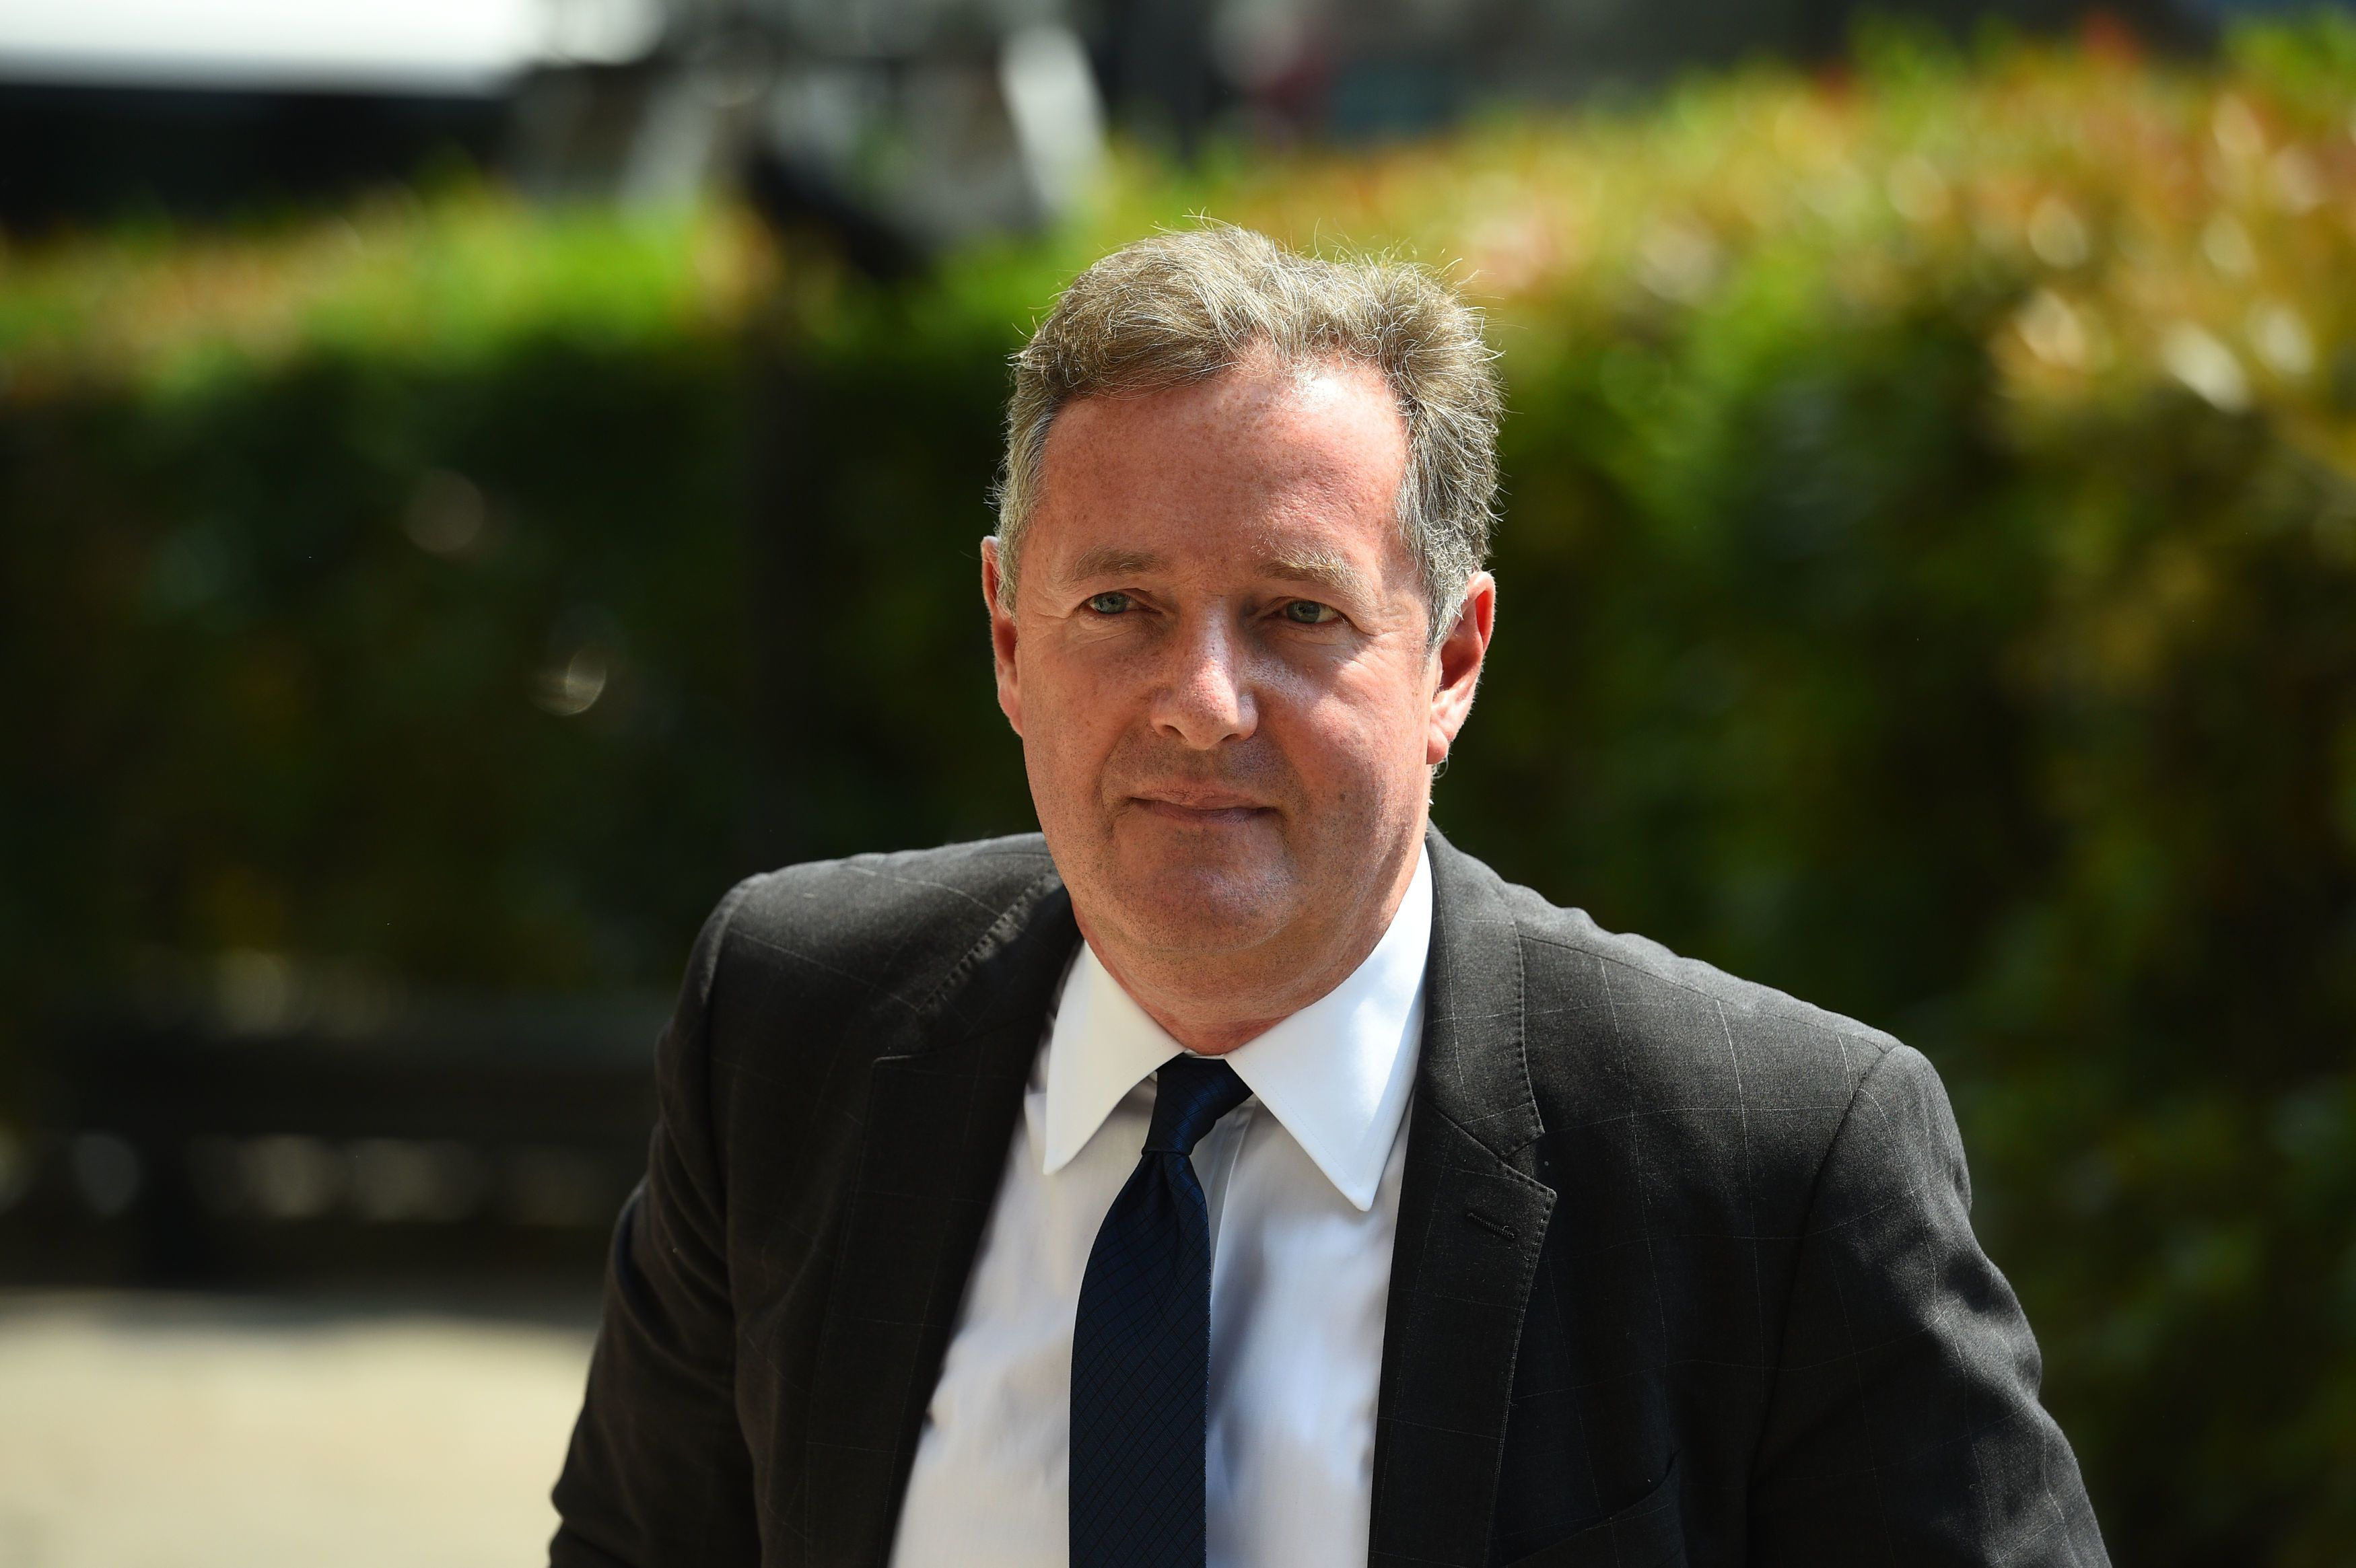 Piers Morgan at Old Church, 1 Marylebone Road in London for the funeral of Supermarket Sweep star Dale Winton on May 22, 2018 | Photo: Getty Images